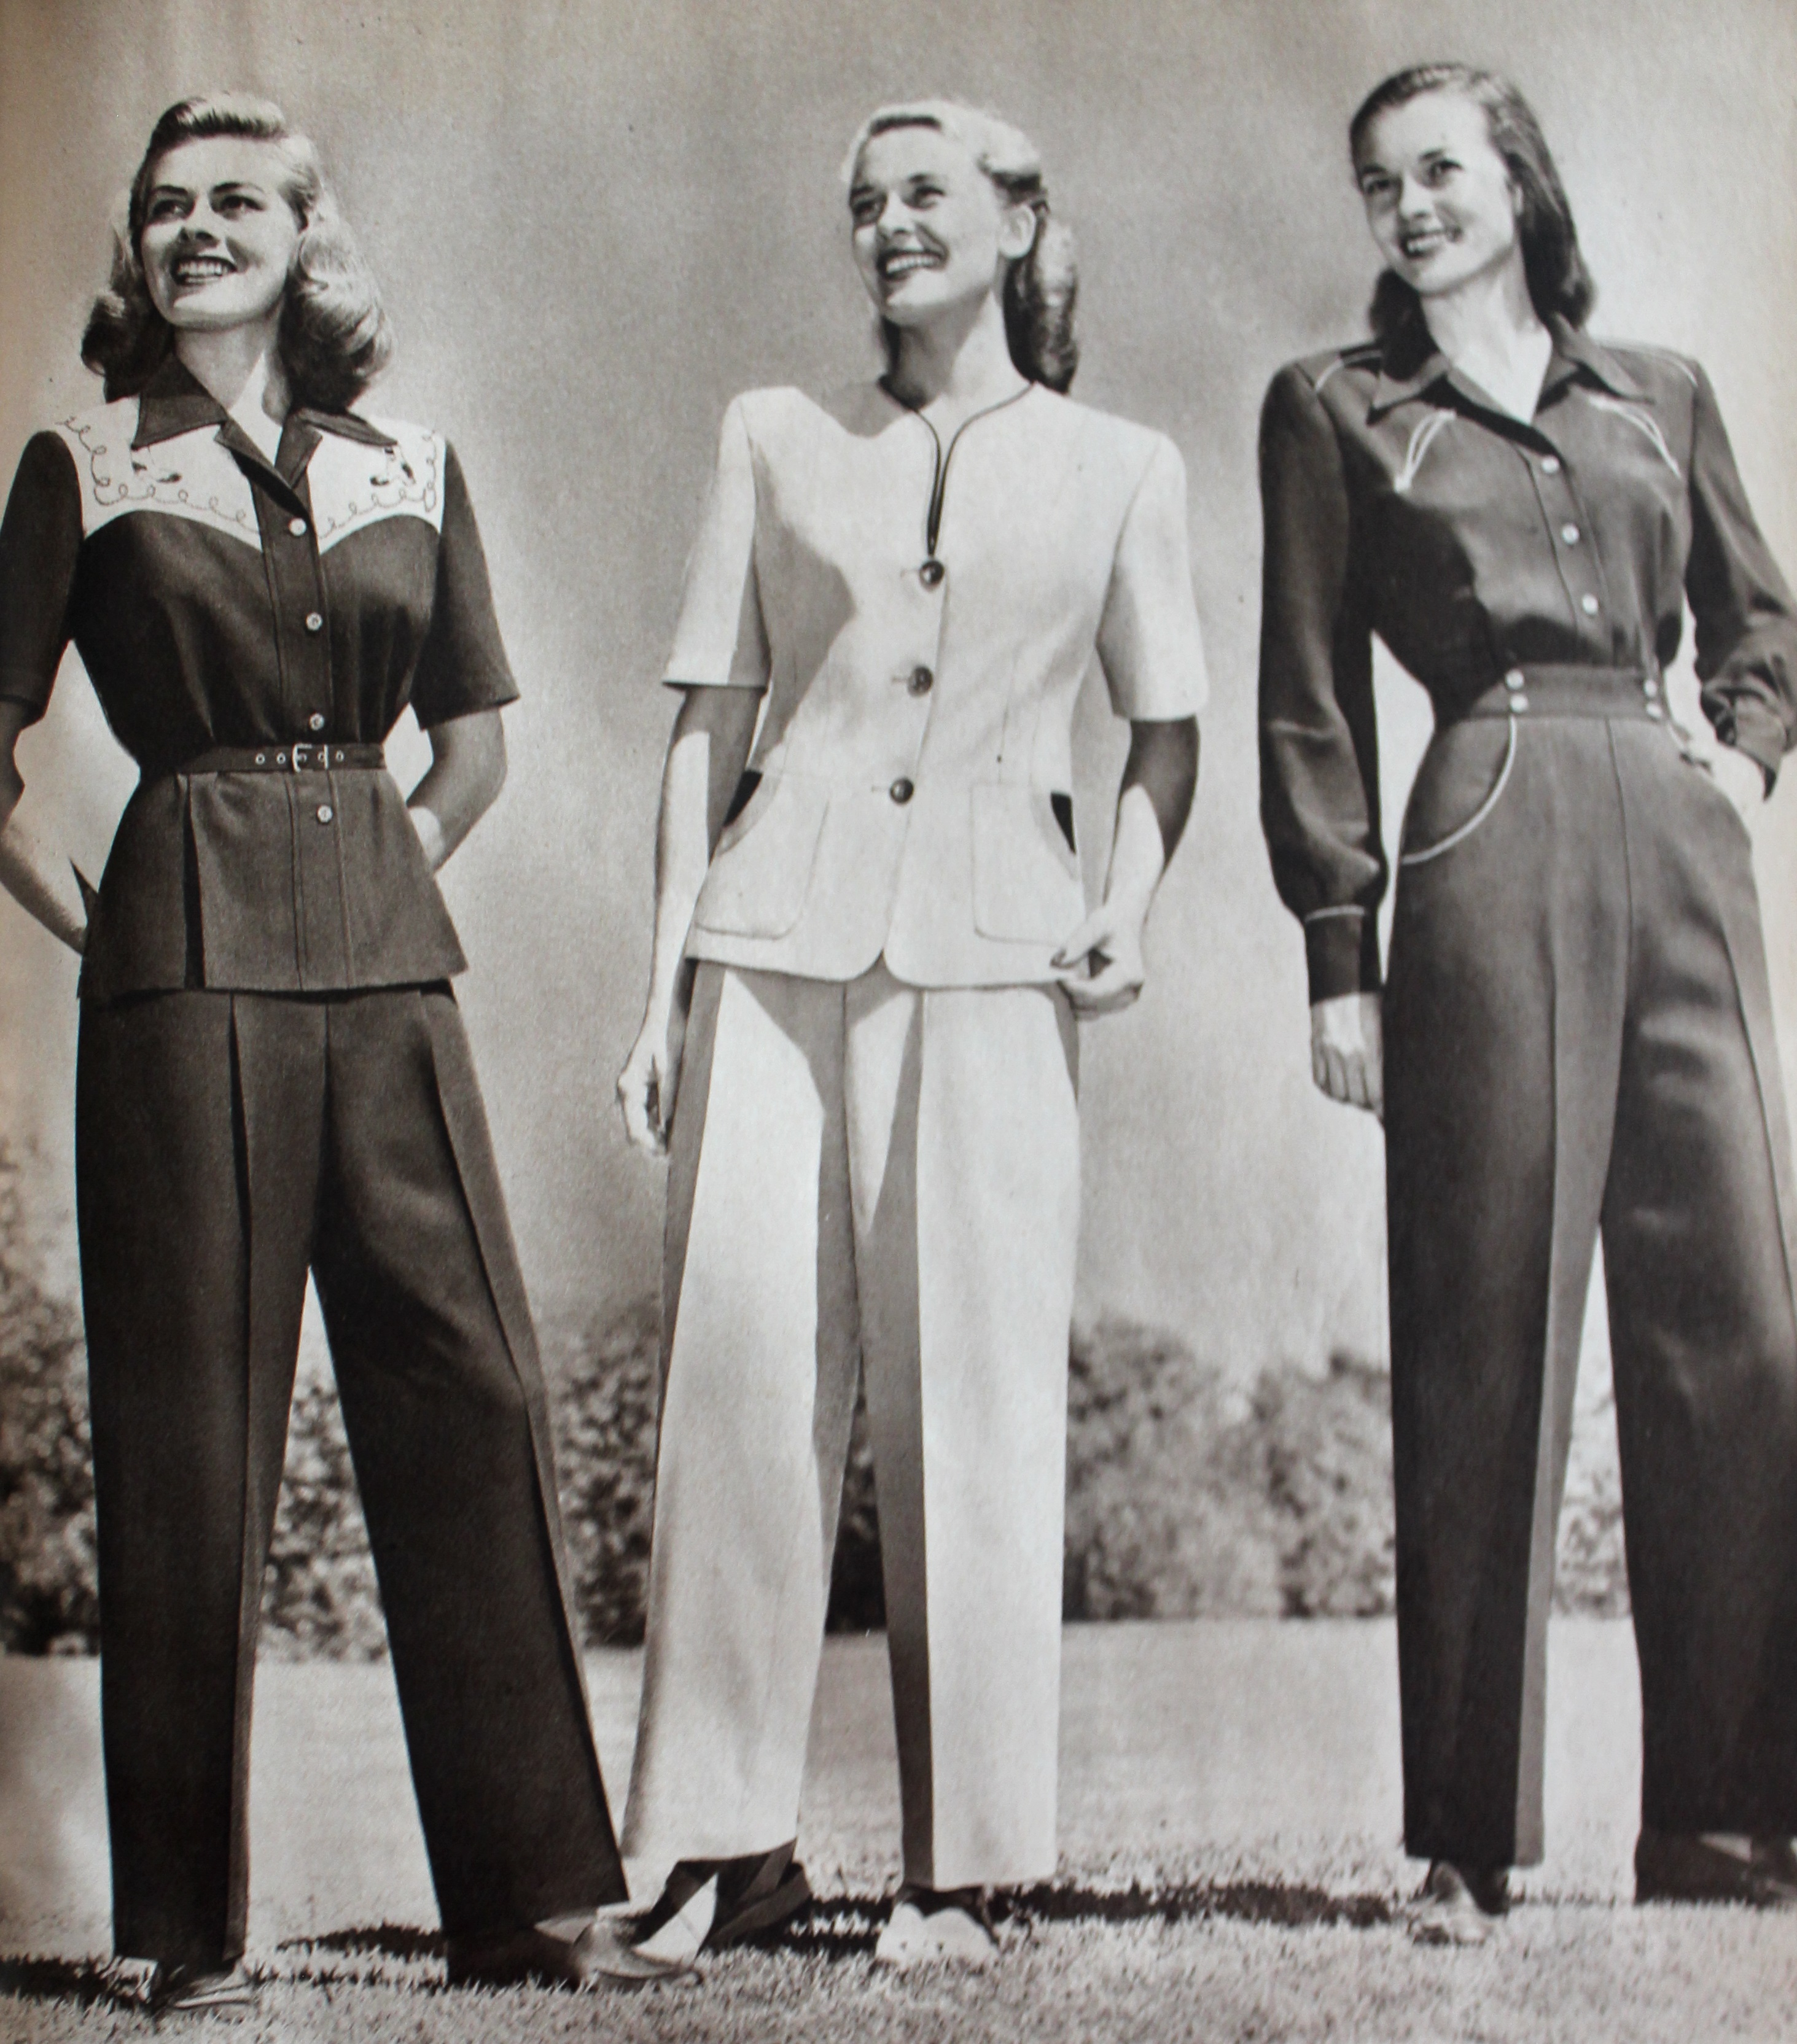 1947 work pant suits 1940s ladies workwear clothes rosie's to nurses,Womens Clothing 1940s